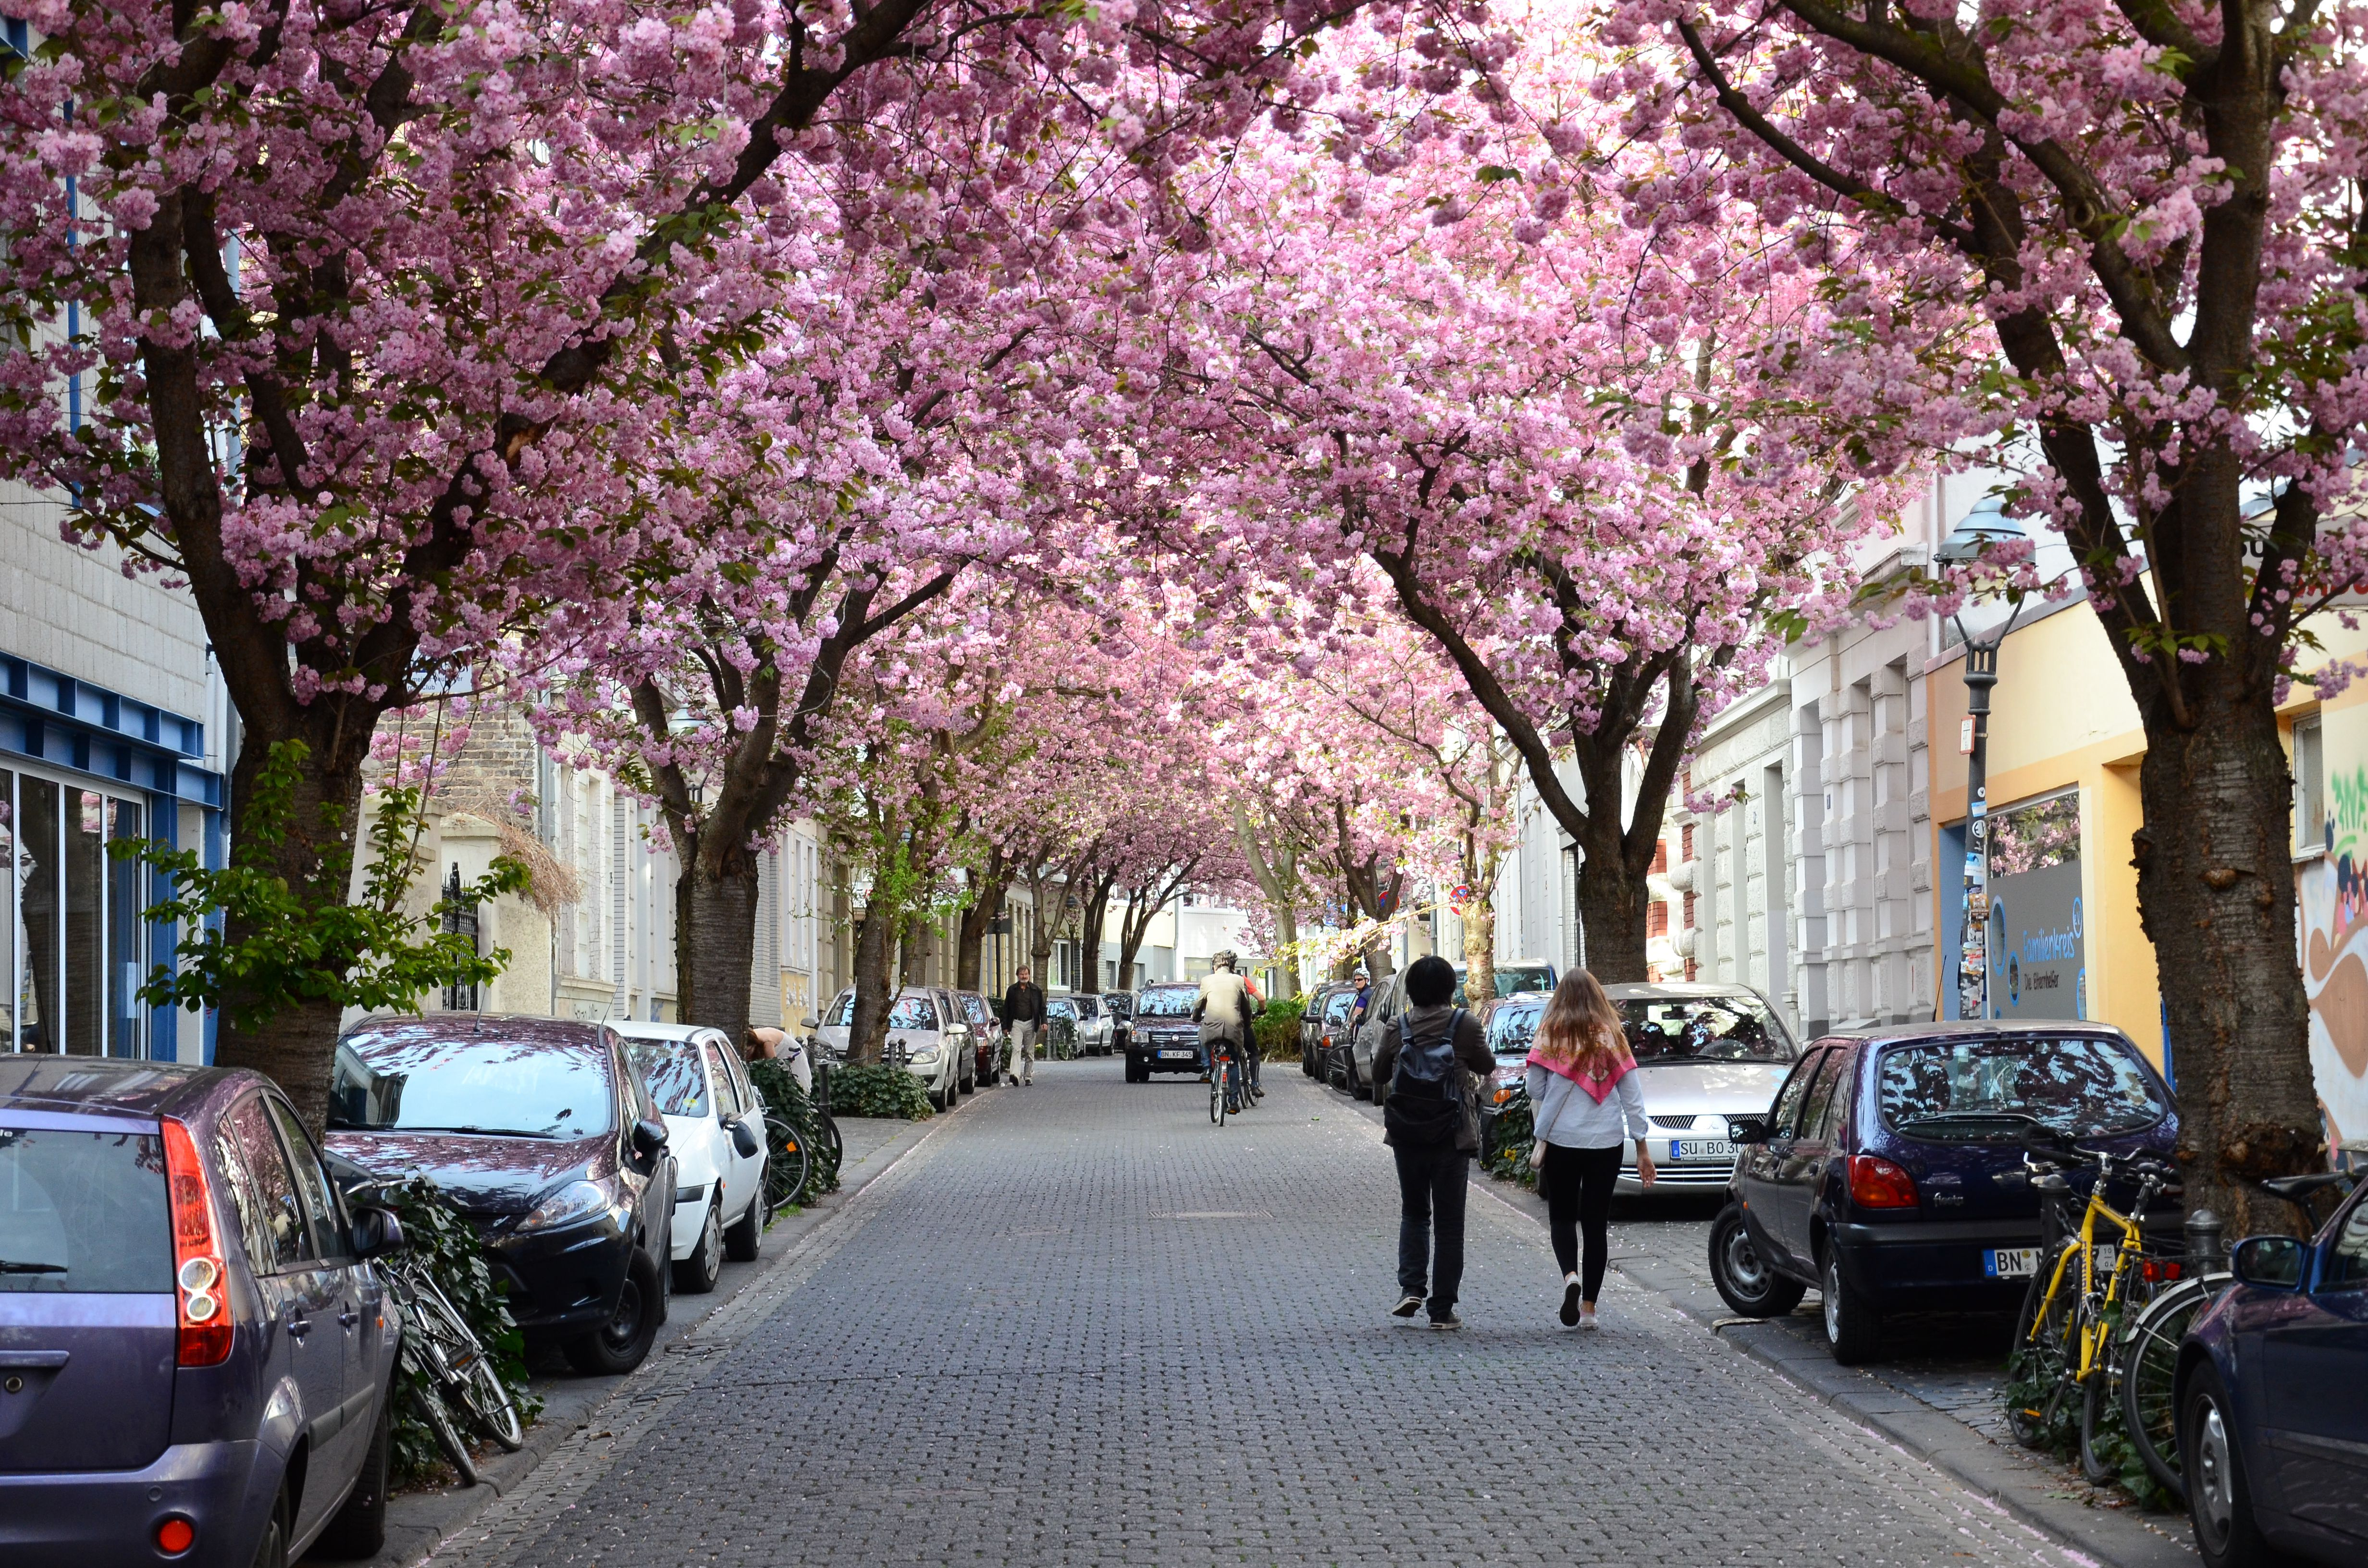 The Best Things To Do In Bonn Germany